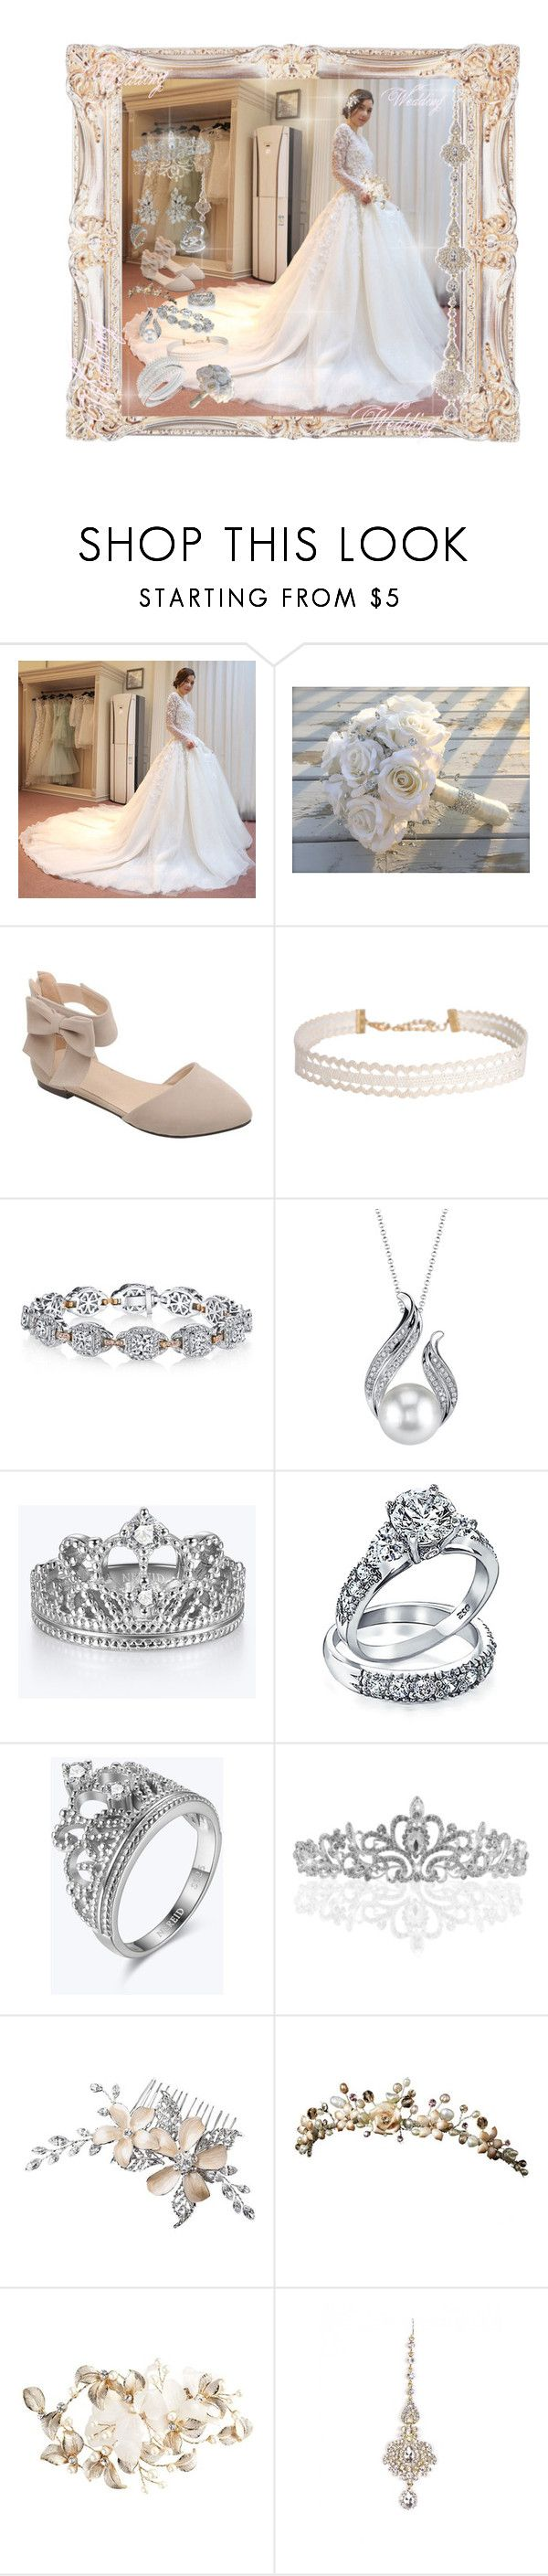 """Wedding <3"" by farrukh-rabia ❤ liked on Polyvore featuring Yacca, Humble Chic, Harry Kotlar, Bling Jewelry and Wedding Belles New York"